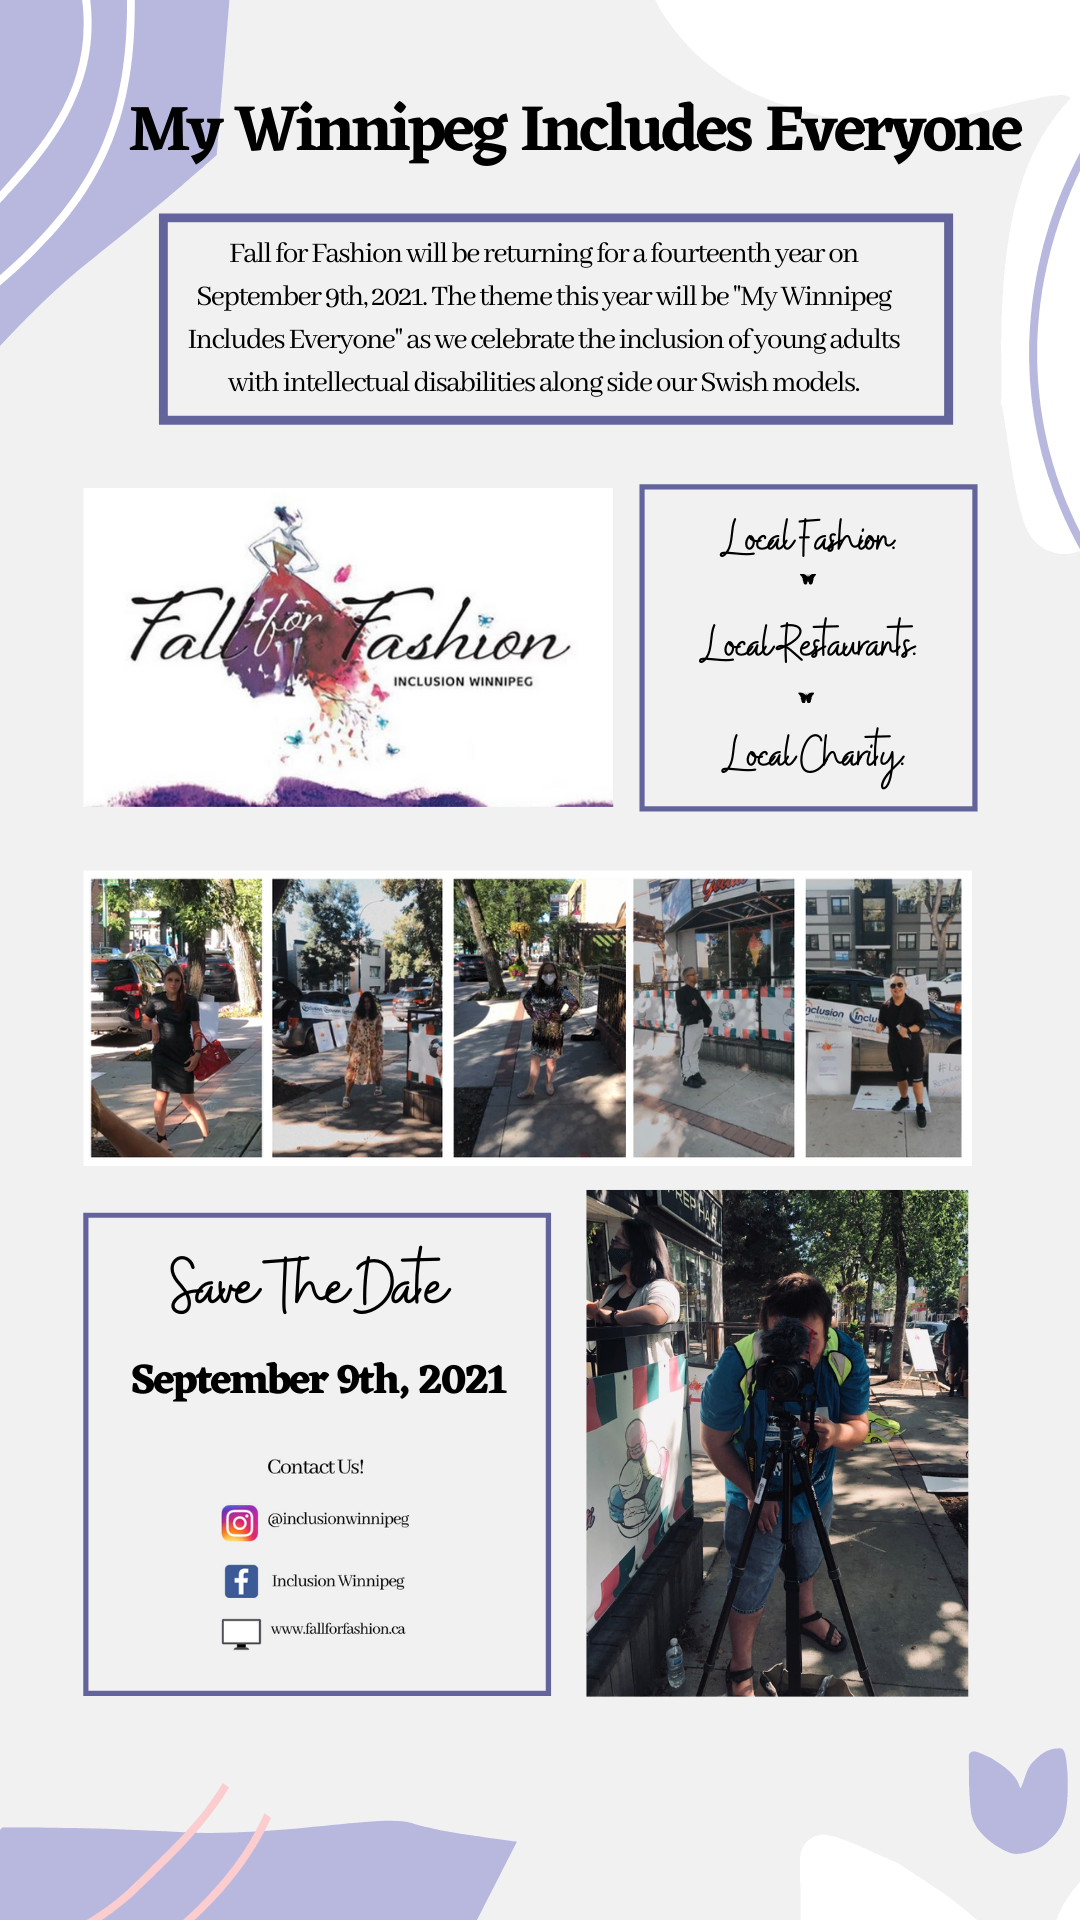 Fall for Fashion Post